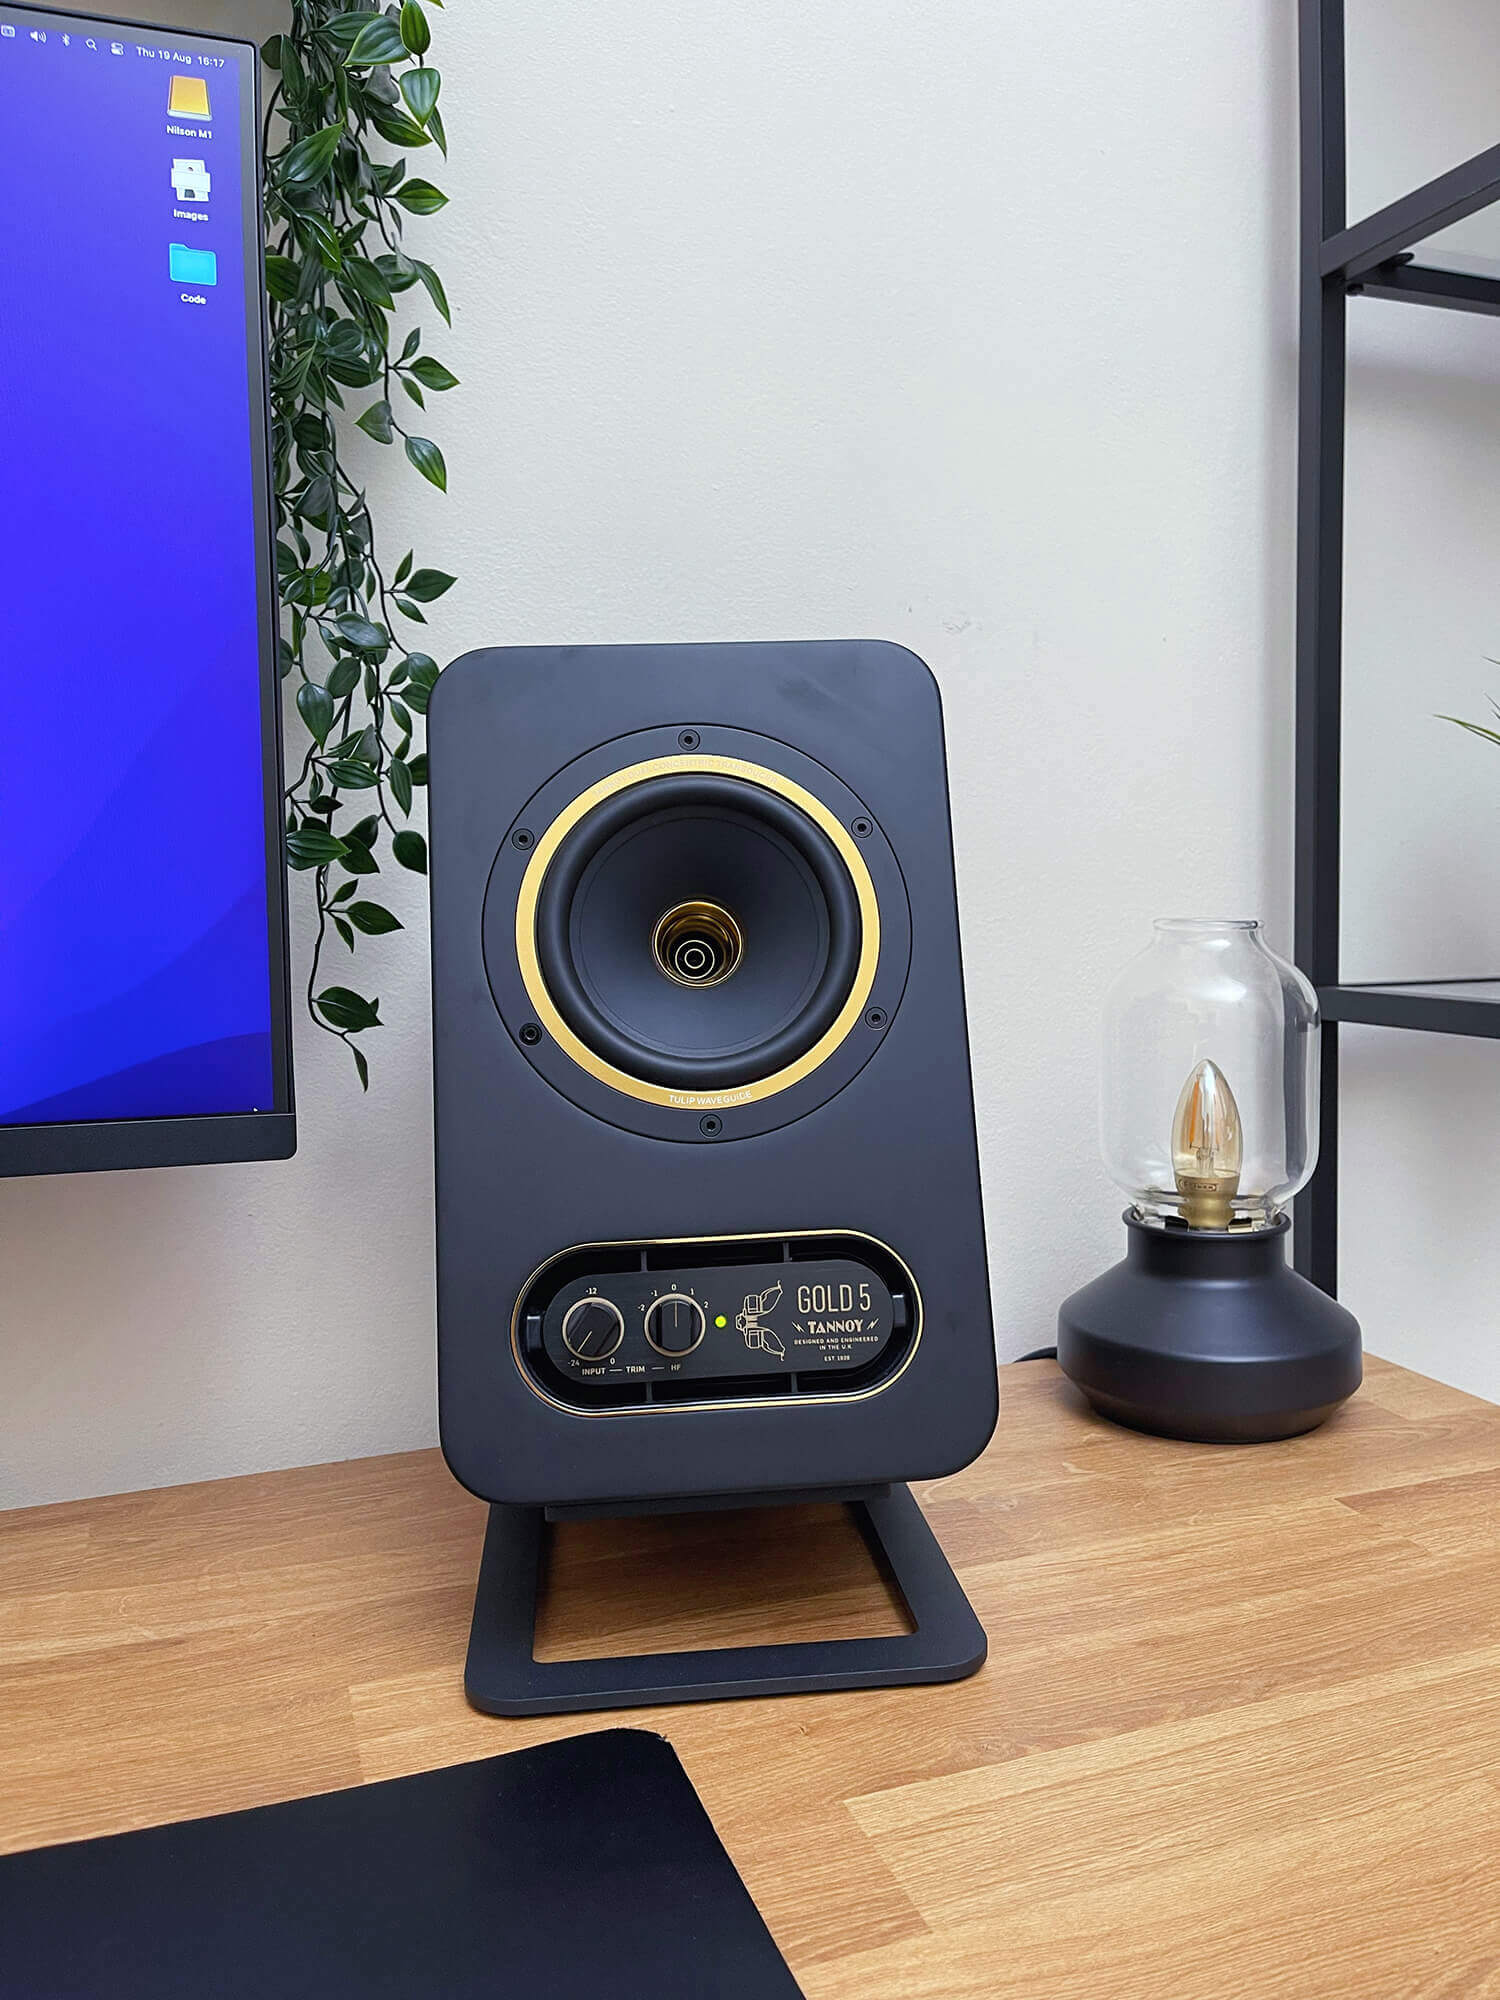 Tannoy Gold 5 speakers features front panel controls for volume and tweeter level